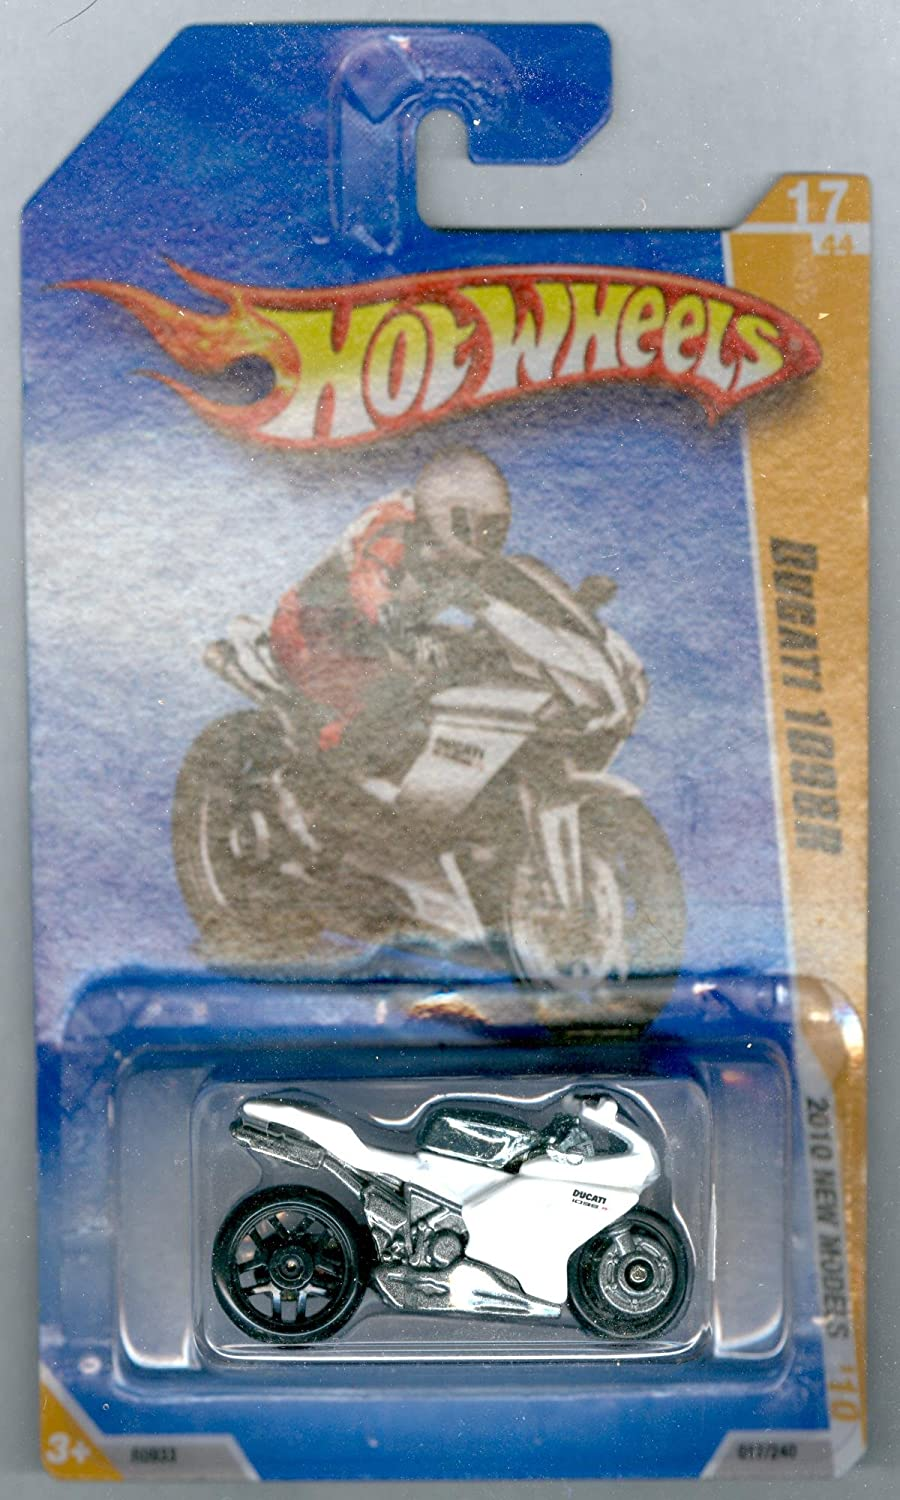 Hw hot wheels 2015 hw city 48 250 canyon carver police motorcycle - Amazon Com Hot Wheels 2010 New Models 17 Of 44 White Ducati 1098r Motorcycle Toys Games